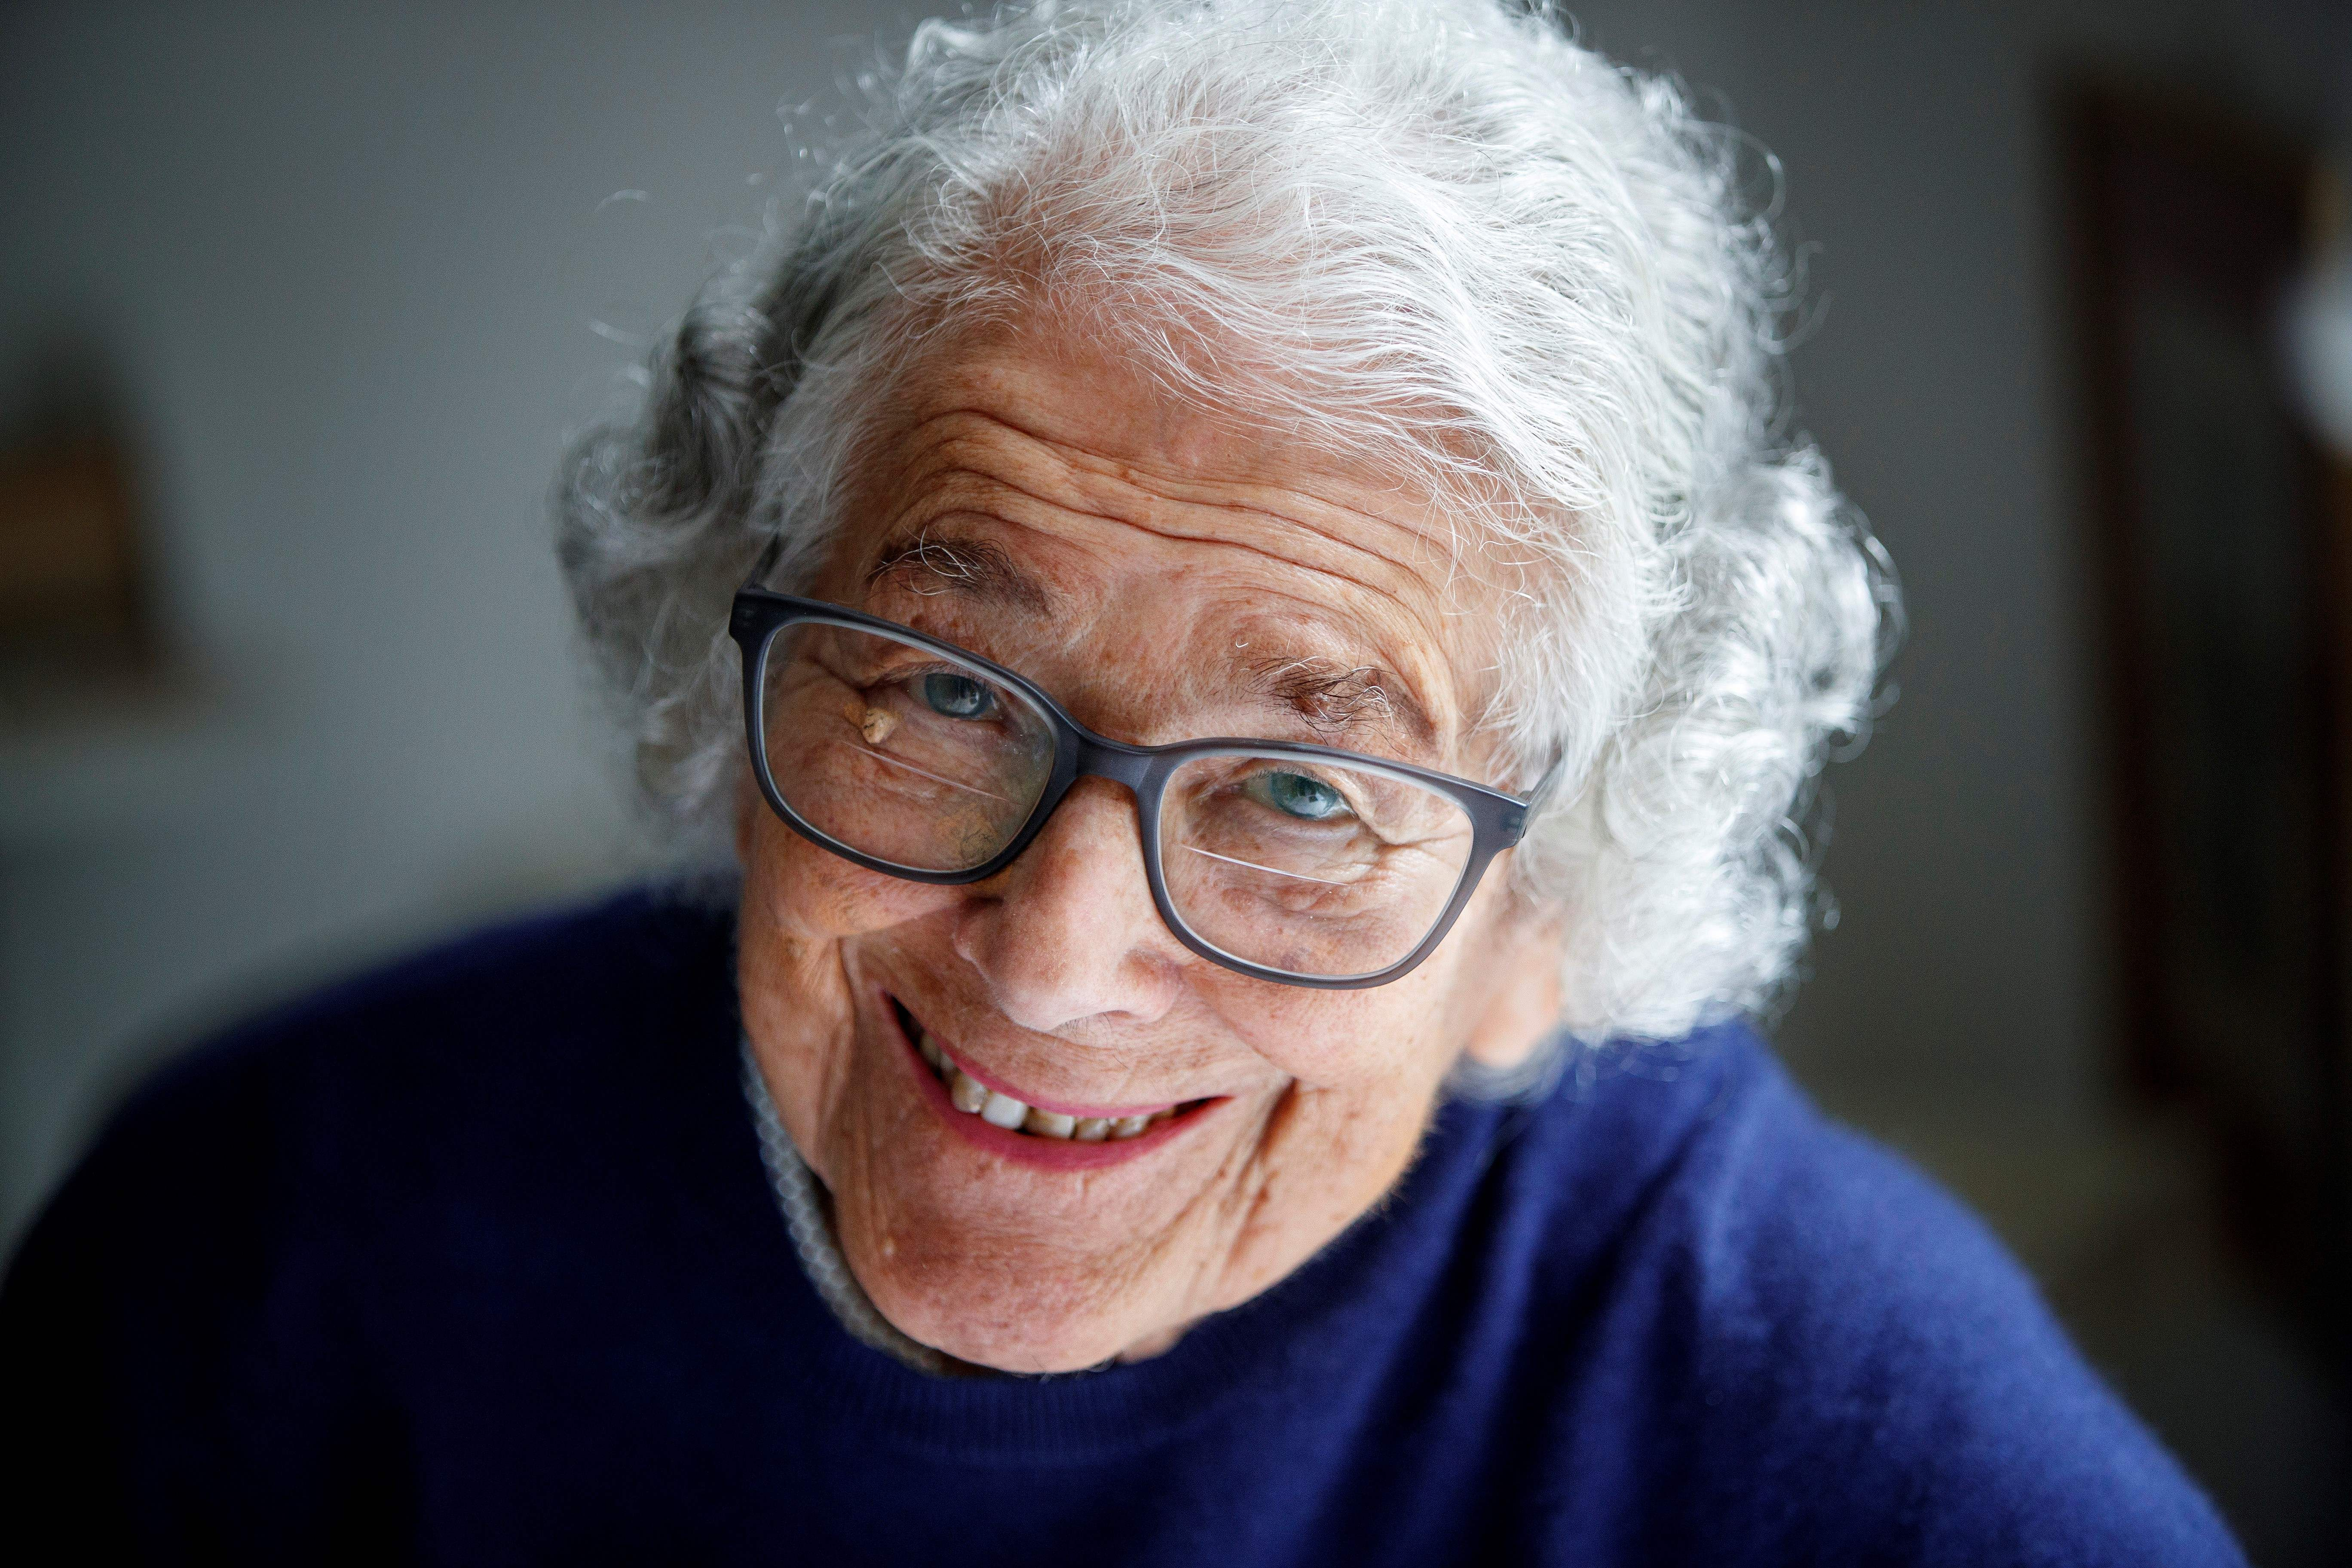 The Tiger Who Came To Tea author Judith Kerr dies at the age of 95